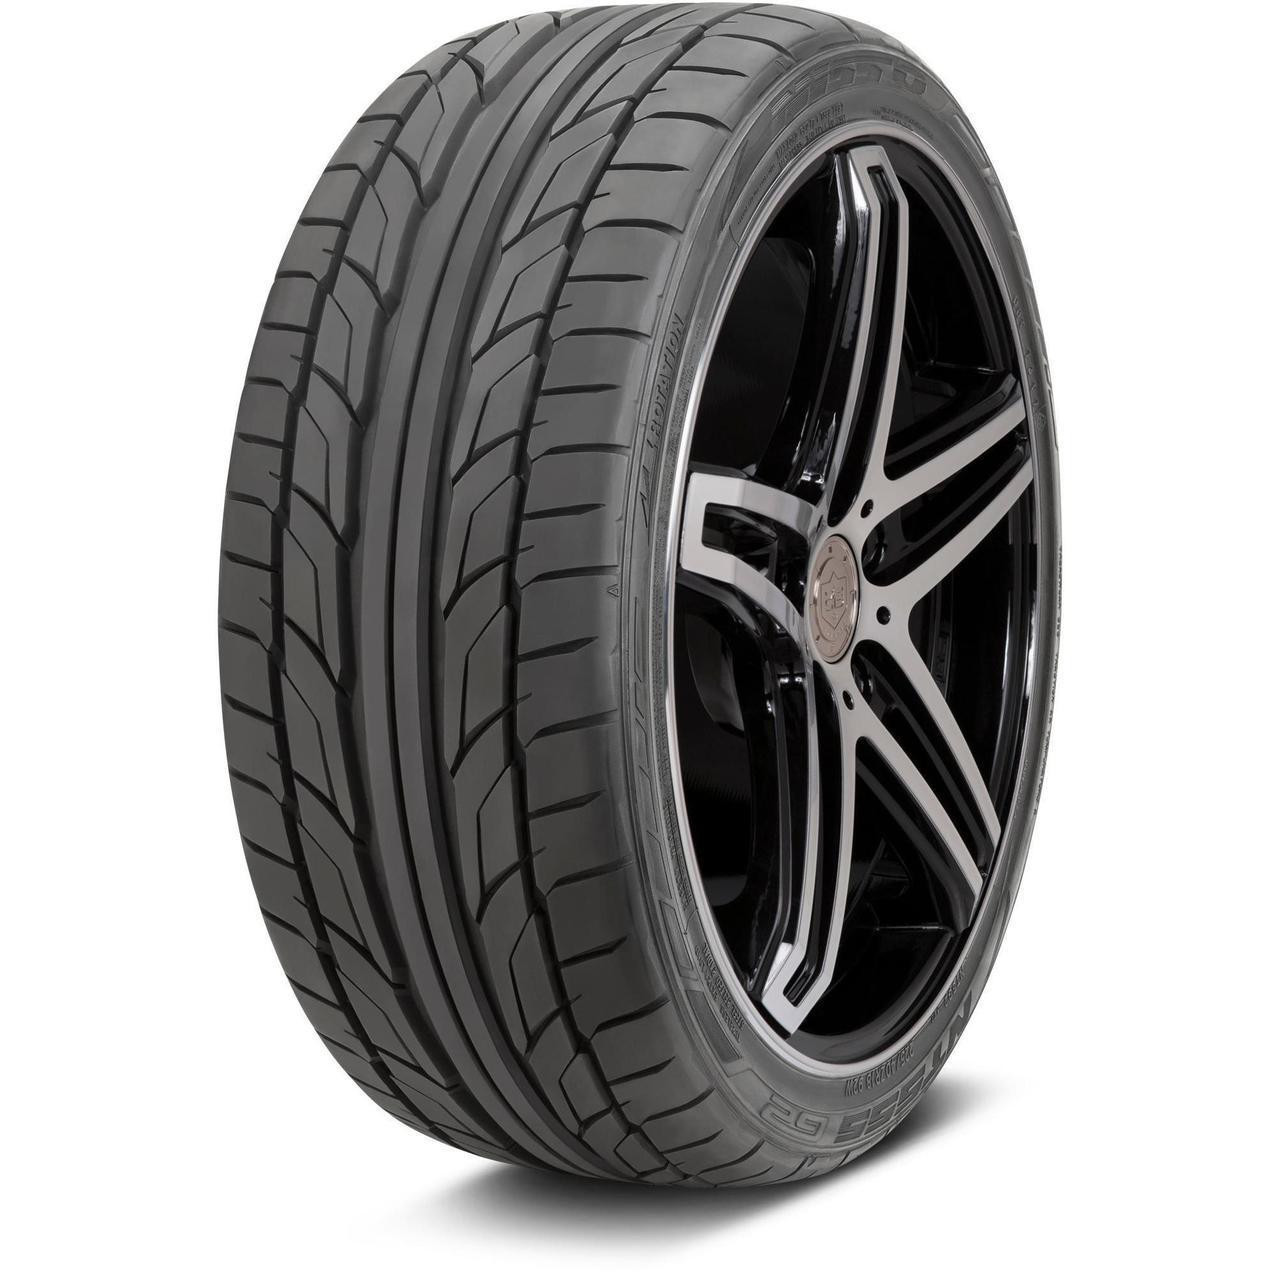 275 35 19 >> Nitto Nt555 G2 Tire 275 35zr19 100w Xl Add To Cart For Discount